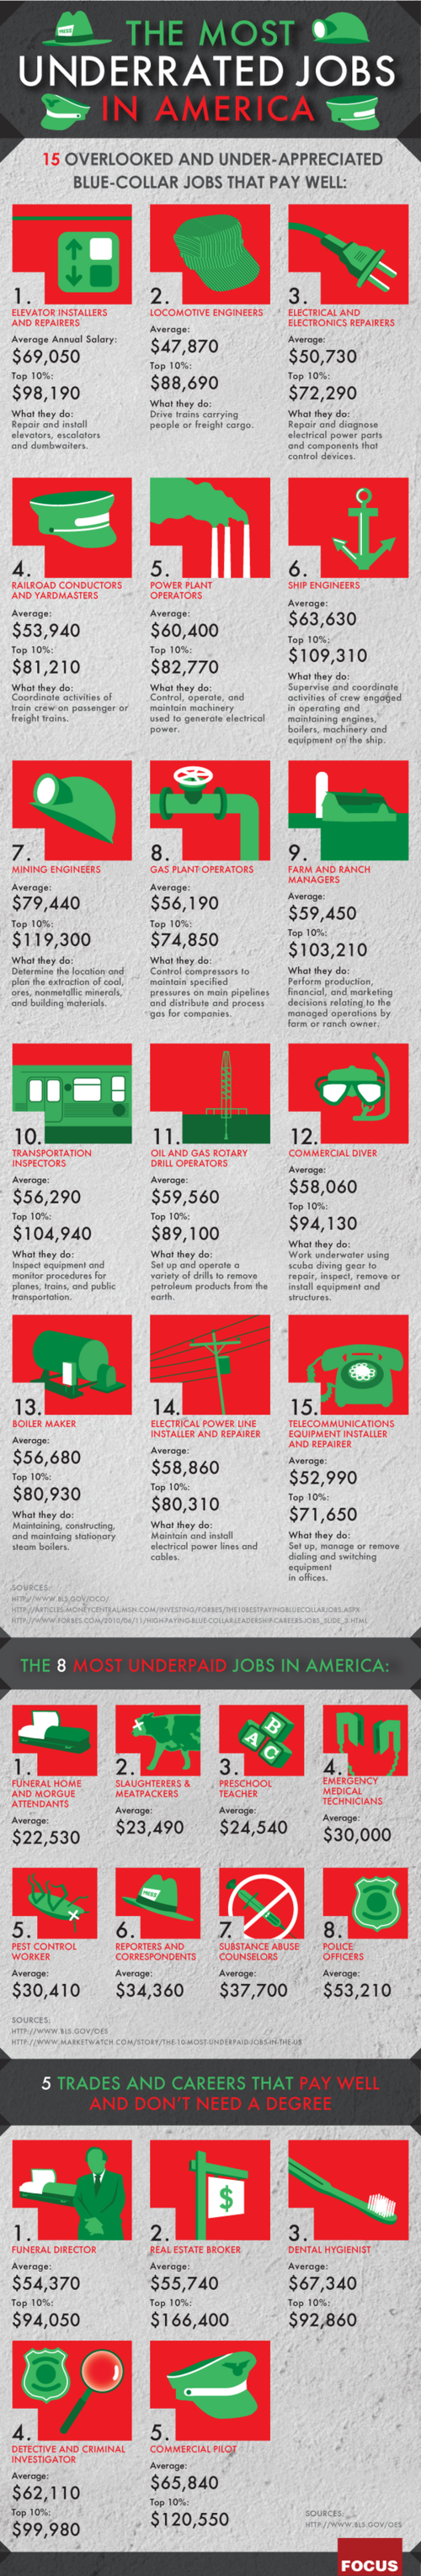 The Most Underrated Jobs in America (Infographic)